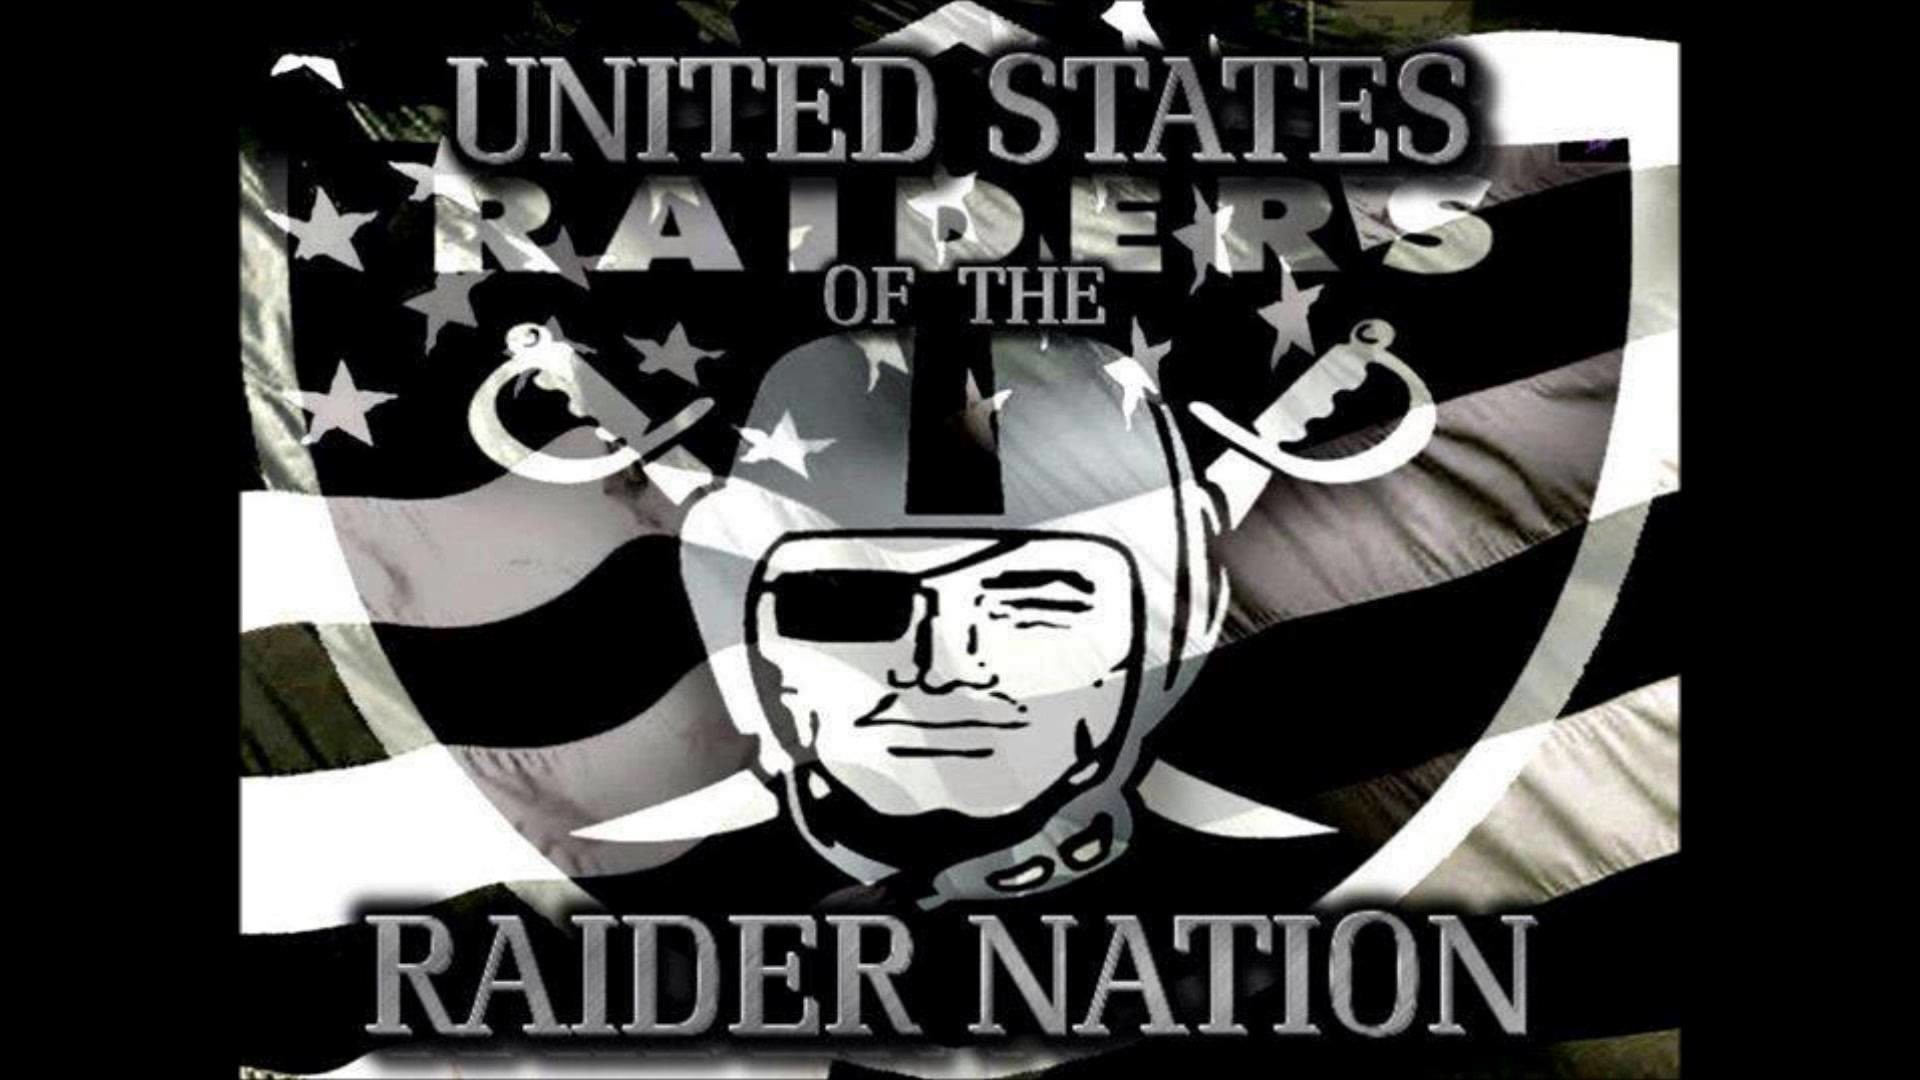 images about jrscoobz on Pinterest Sexy, Oakland raiders 1920×1080 Raiders  Nation Wallpapers (18 Wallpapers)   Adorable Wallpapers   Desktop    Pinterest …